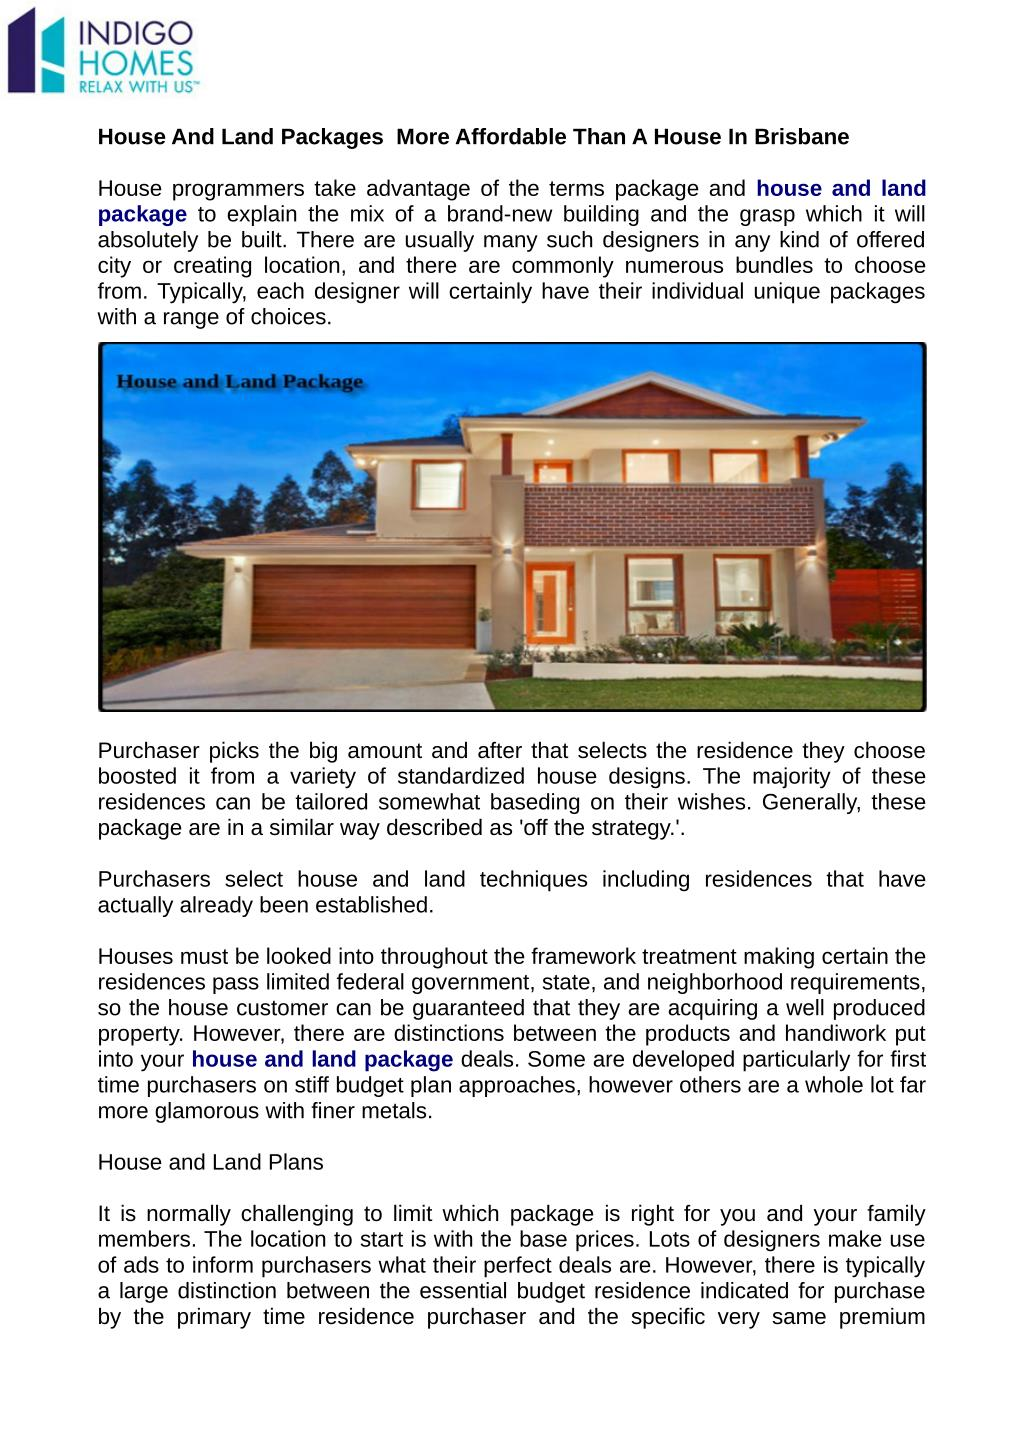 Ppt House And Land Packages More Affordable Than A House In Brisbane Powerpoint Presentation Id 7339230